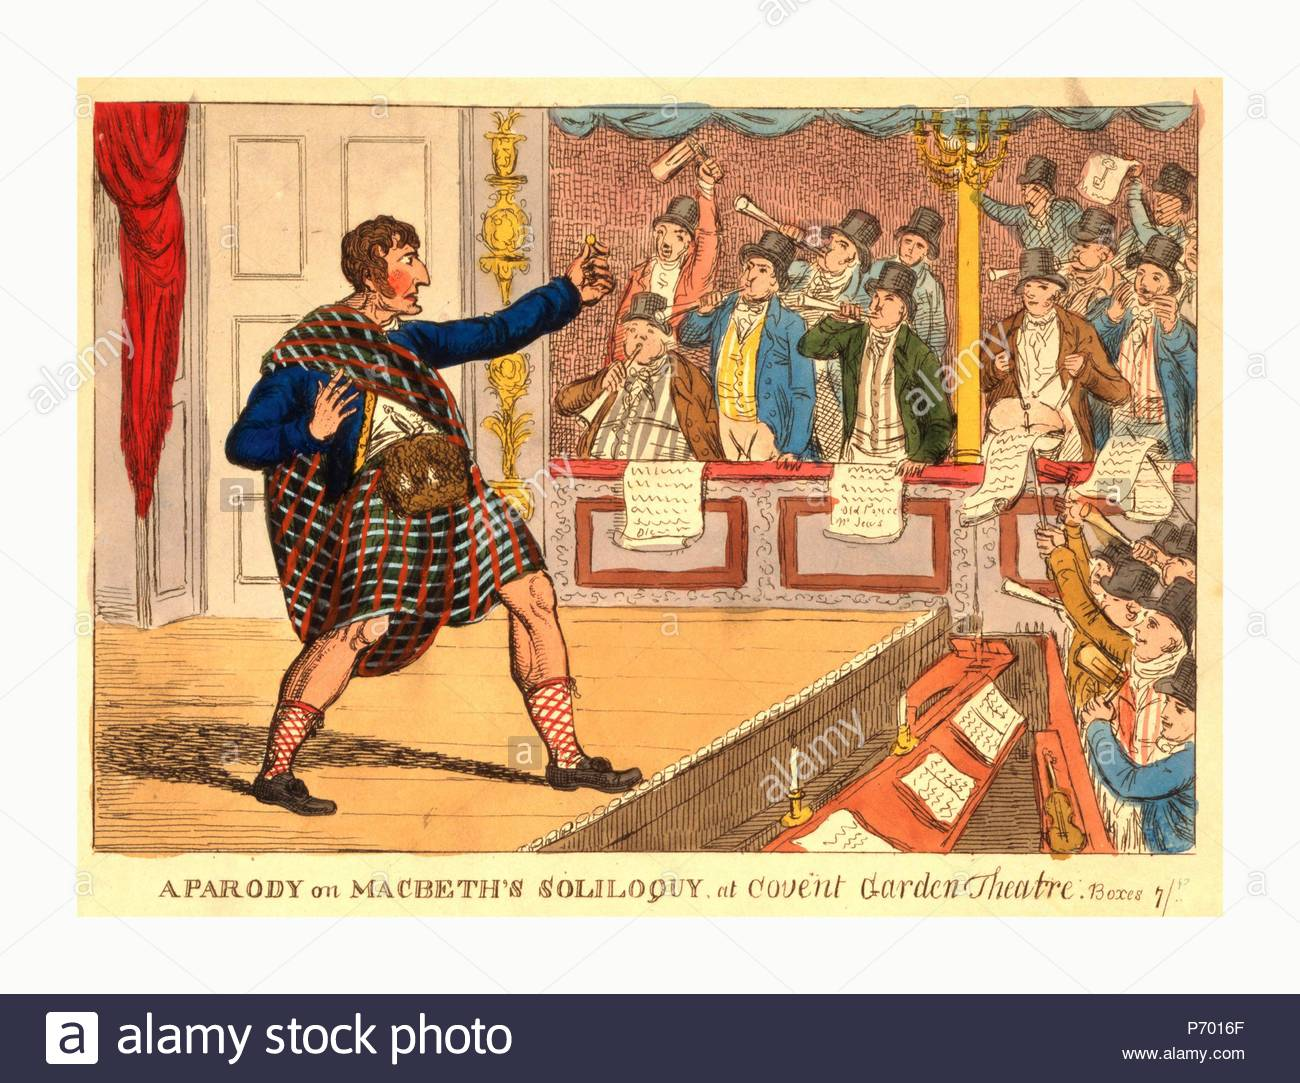 A parody on Macbeth's soliloquy at Covent Garden Theatre, engraving 1809, Kemble as Macbeth, in Highland dress, declaims before the footlights; holding out a coin in his left hand, he staggers back, left leg forward. - Stock Image